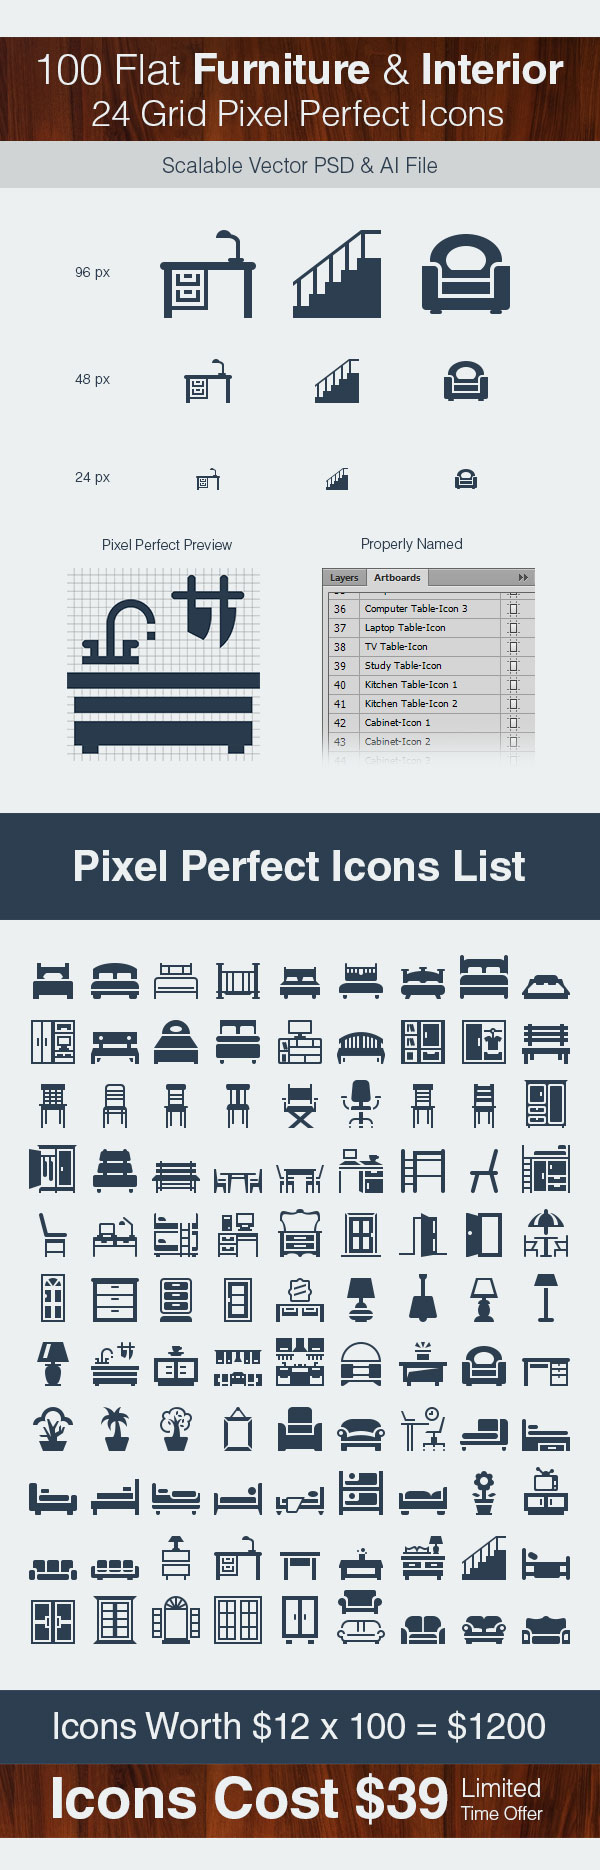 flat furniture interior pixel perfect icons ai vector psd. Black Bedroom Furniture Sets. Home Design Ideas